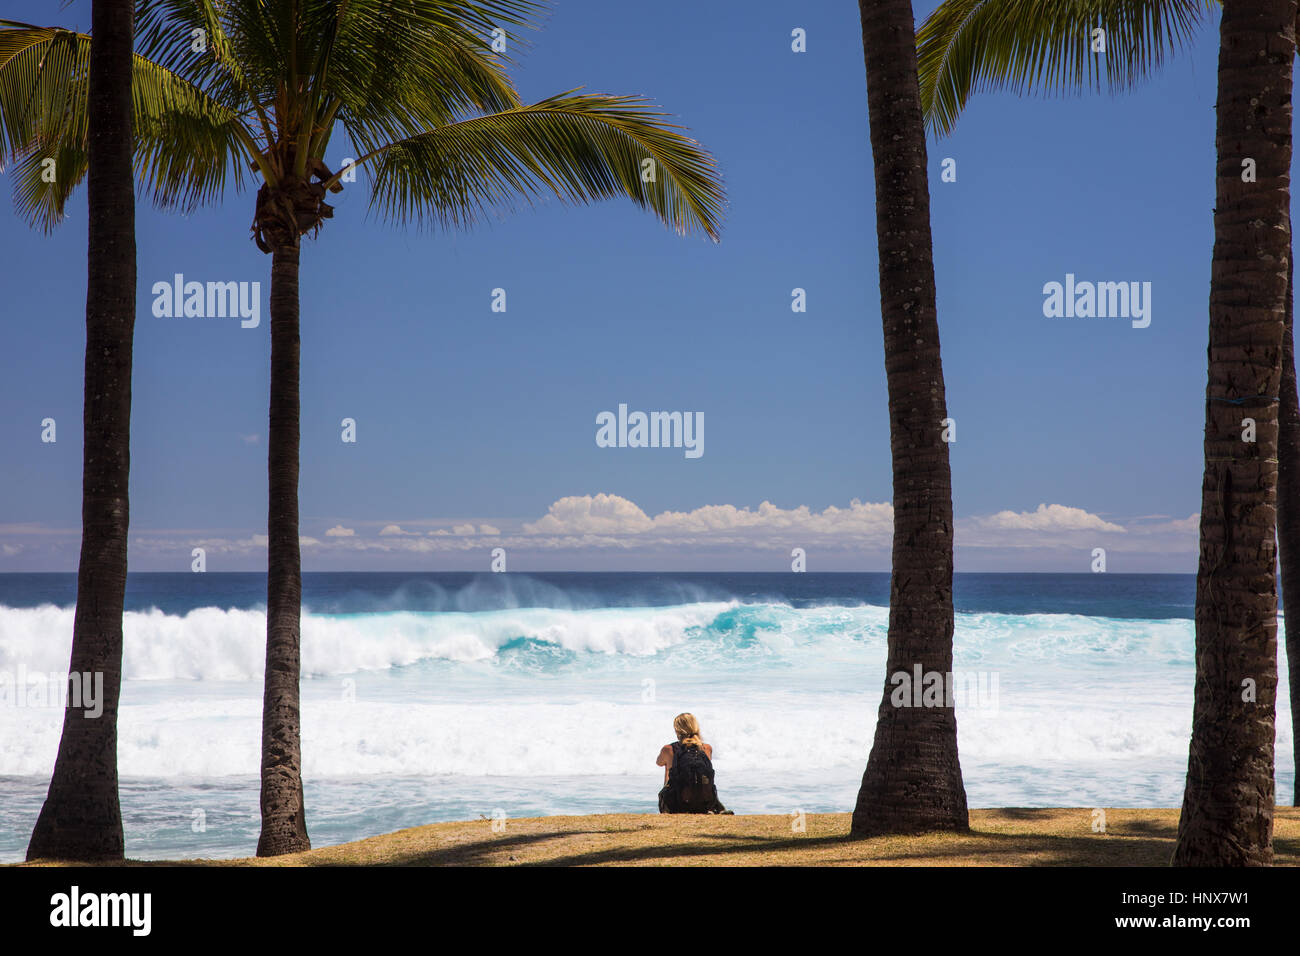 Female tourist sitting on beach looking out at Indian Ocean, Reunion Island - Stock Image